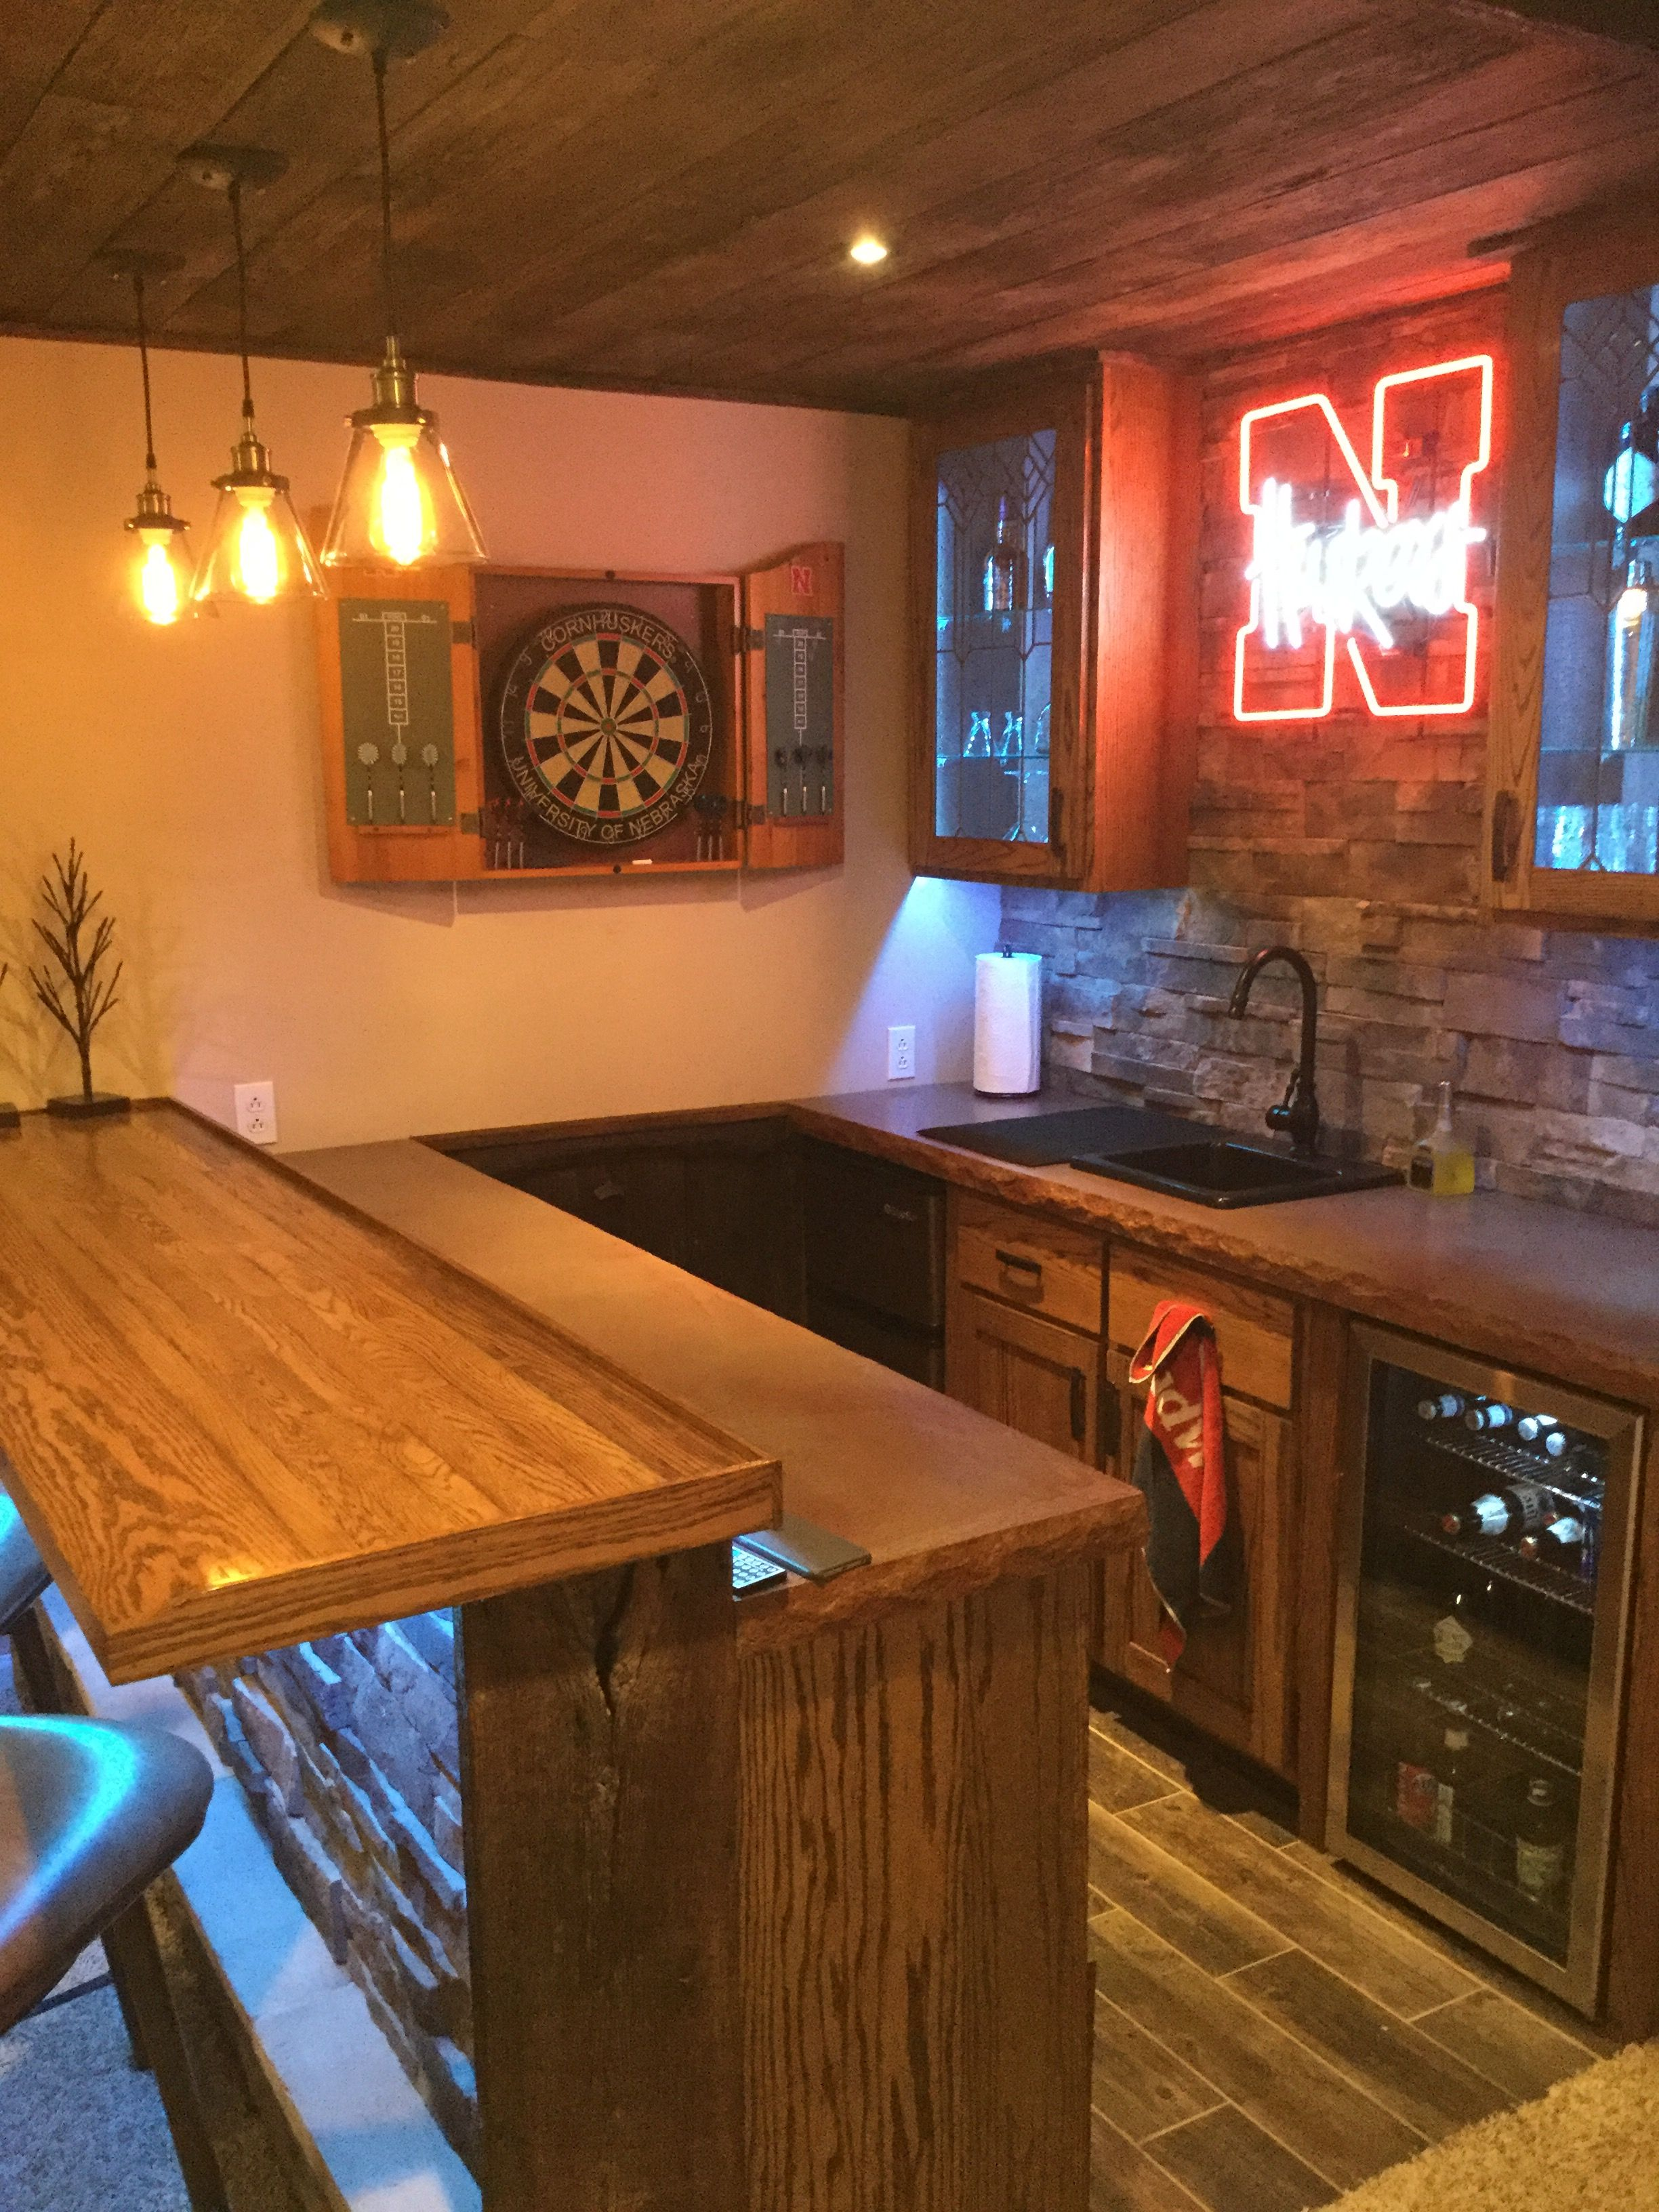 Charmant House Bar, Fun House, Basement Bars, Pool Table, Bar Ideas, Basements,  Sheds, Men Cave, Desserts